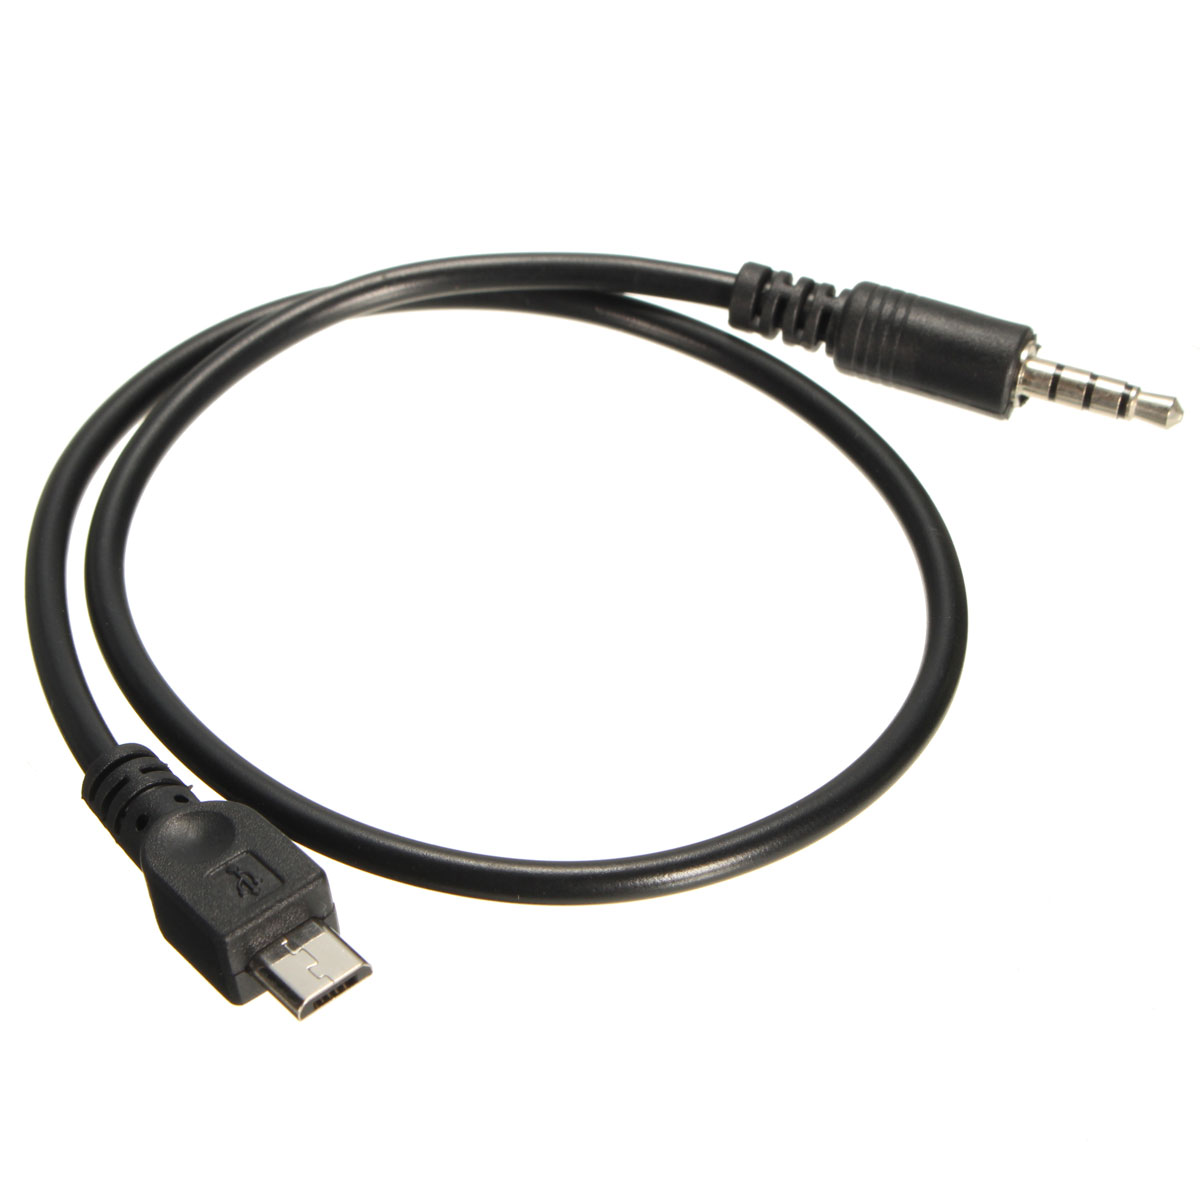 40cm Micro USB 2 0 to 3 5mm AUX Car Lead Jack USB Audio Cable Cord